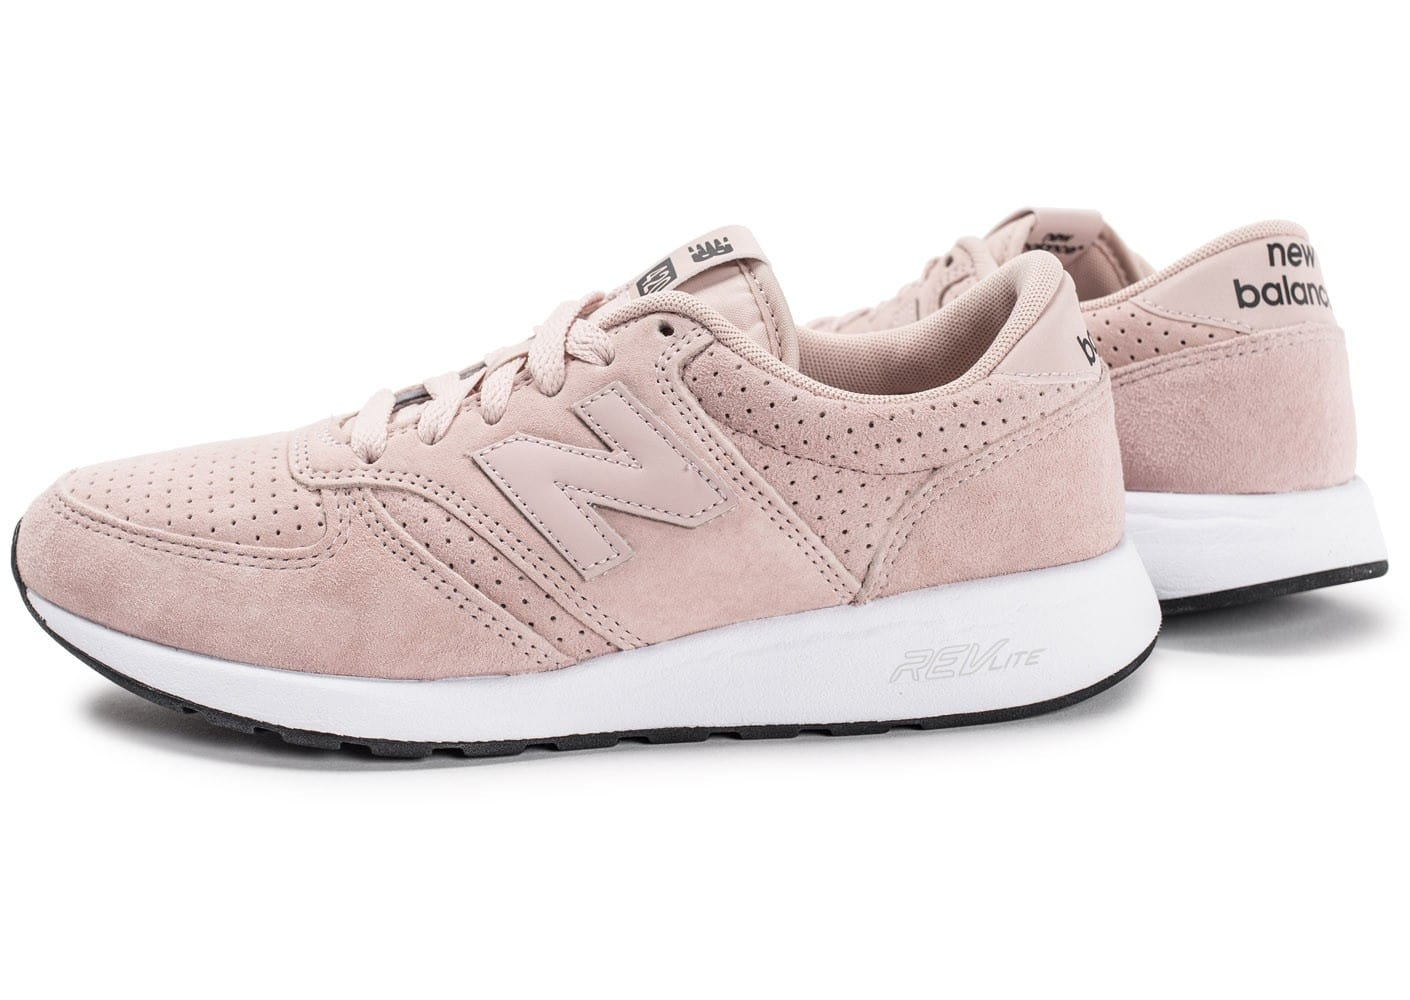 Balance Pink Dusty Mrl420sk Femme Chaussures Leather Baskets New pSPvWdP